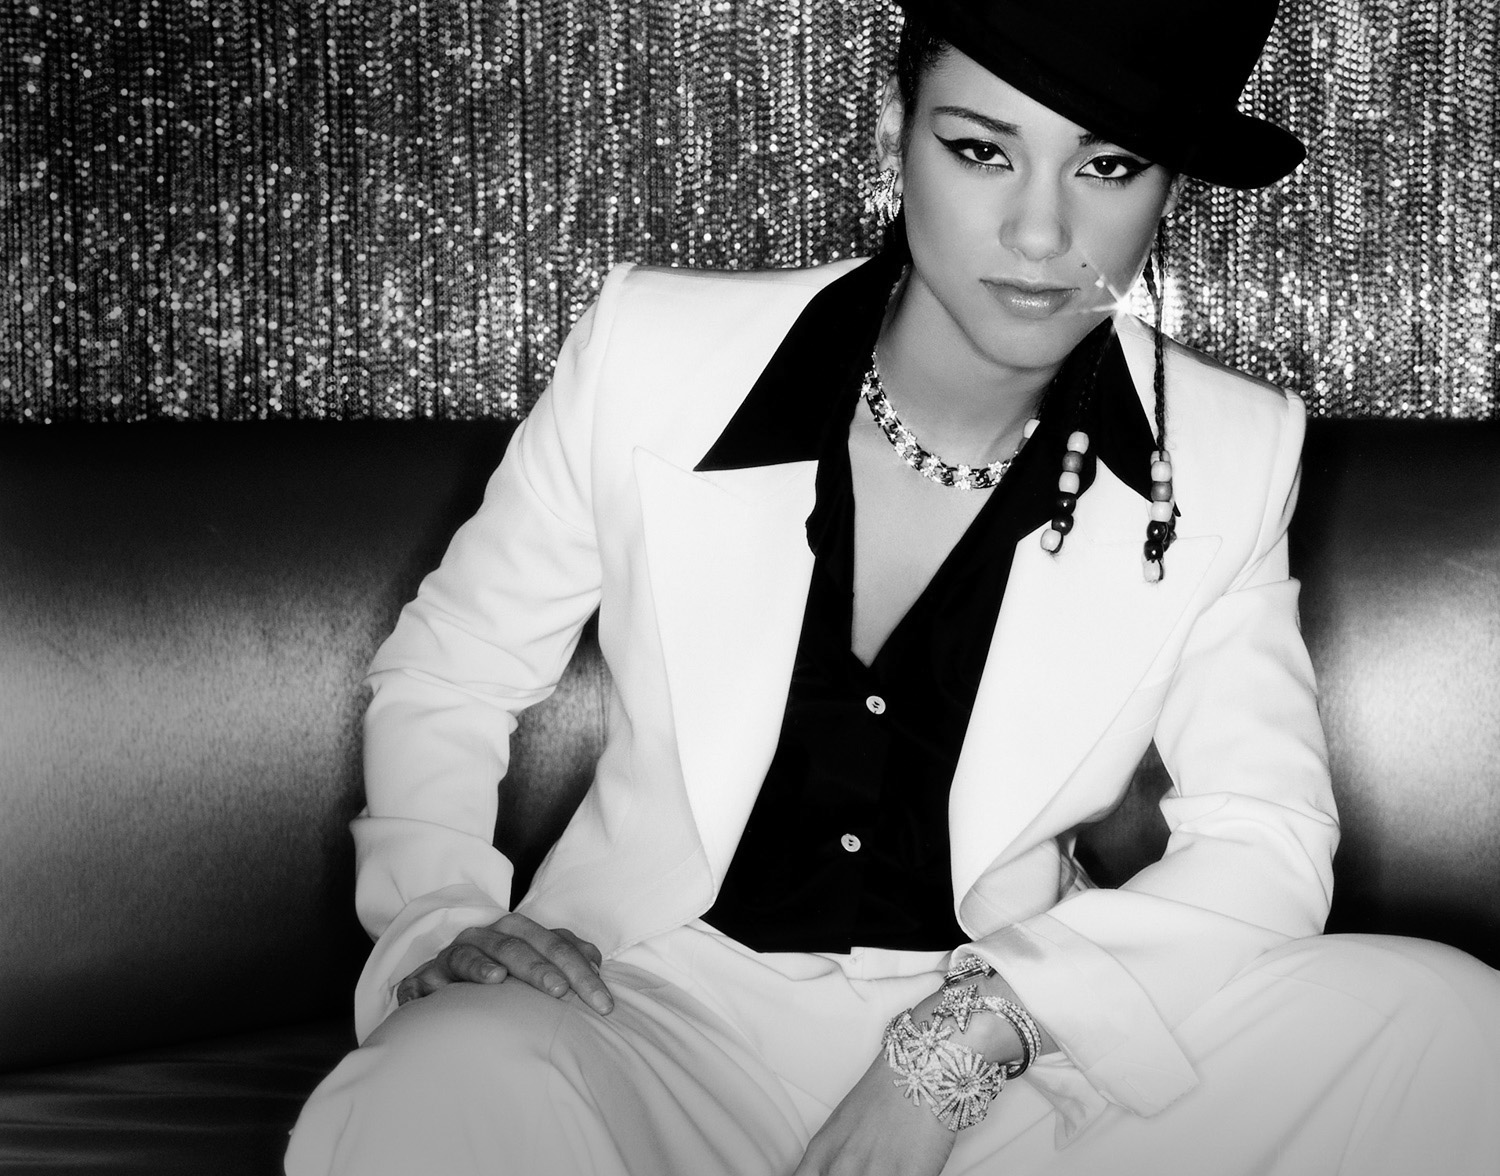 ALICIA-KEYS-Photography-by-Indira-Cesarine-002-BW.jpg